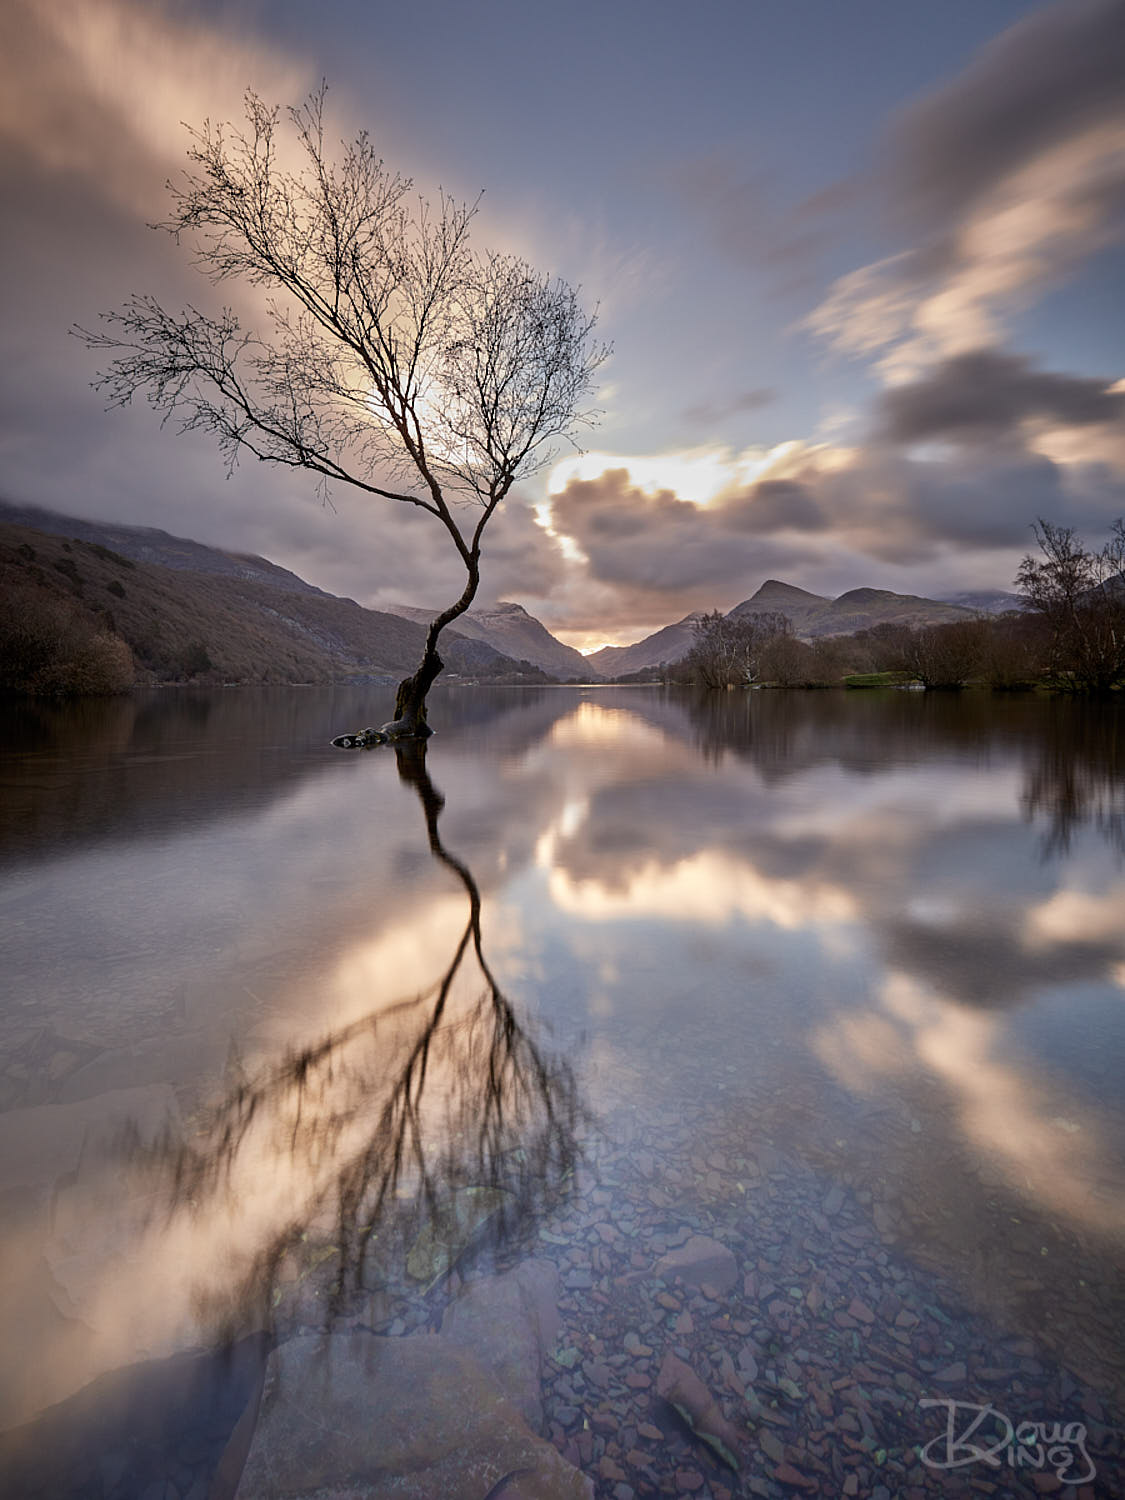 The Lonely Tree of Padarn